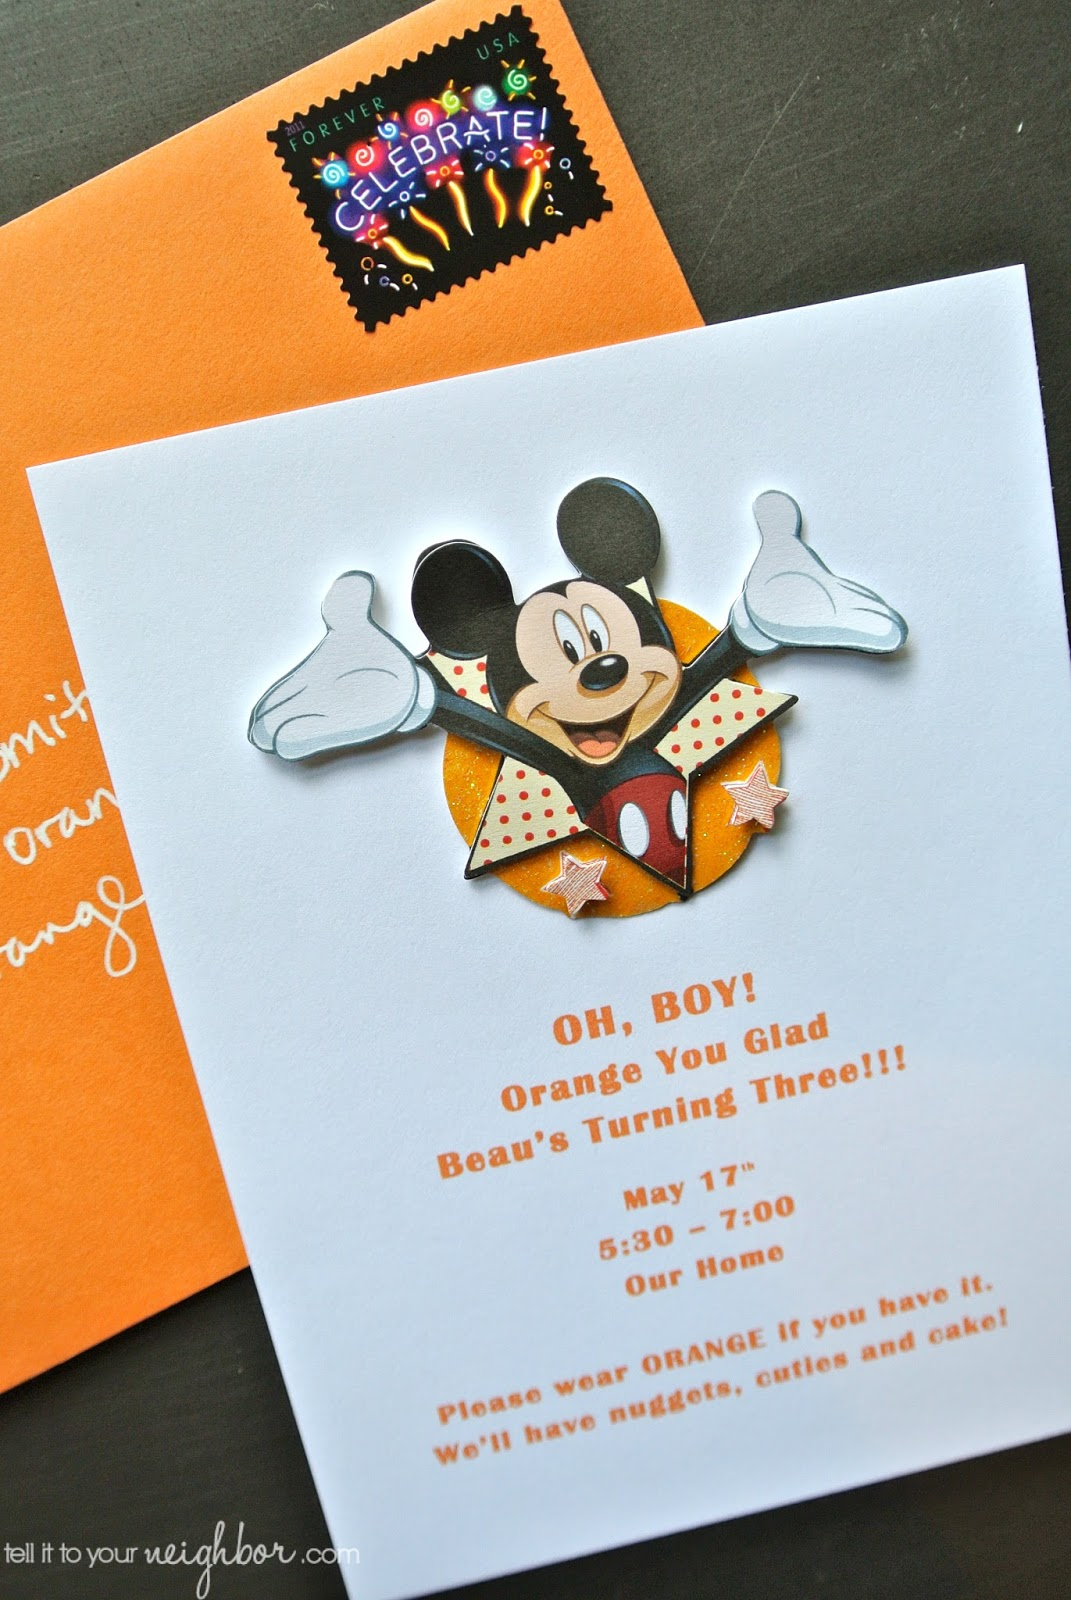 tell it to your neighbor!: Easy Mickey Mouse Invite + Free ...